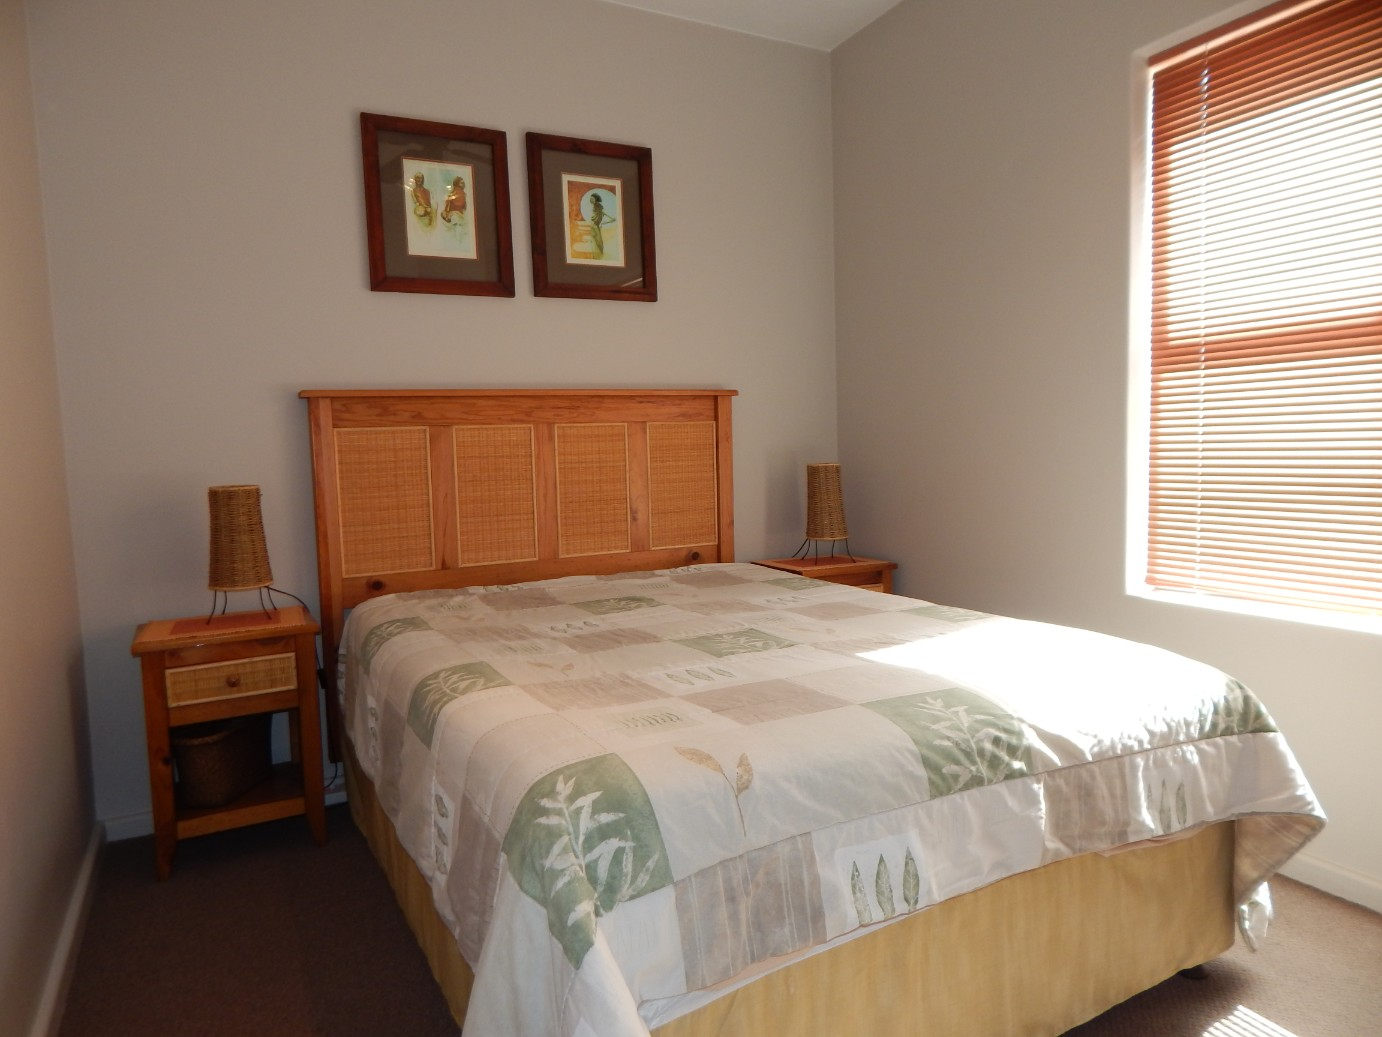 3 Bedroom Apartment for sale in Diaz Beach ENT0080239 : photo#12